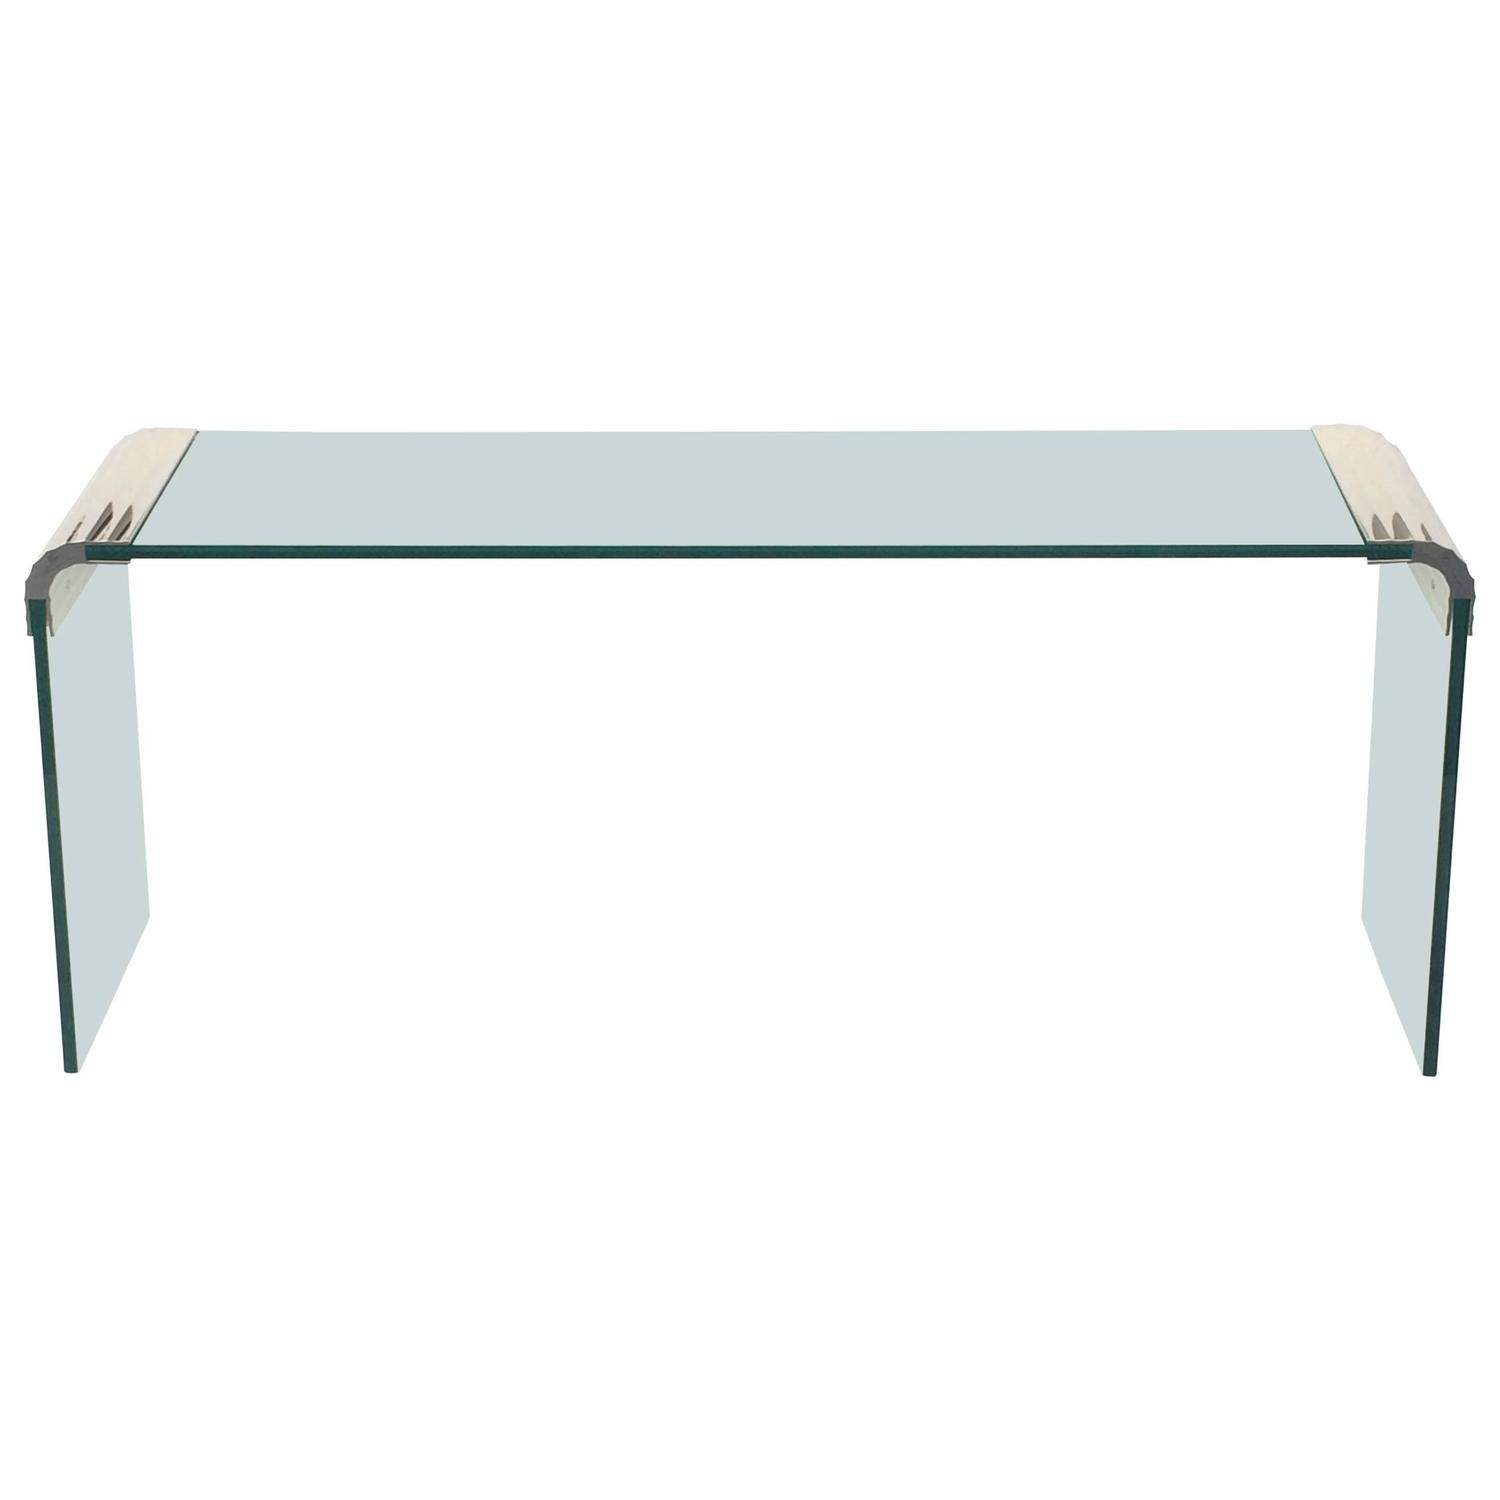 Mesas De Centro De Cristal En El Corte Ingles Scalloped Nickel And Glass Console Table By Leon Rosen For